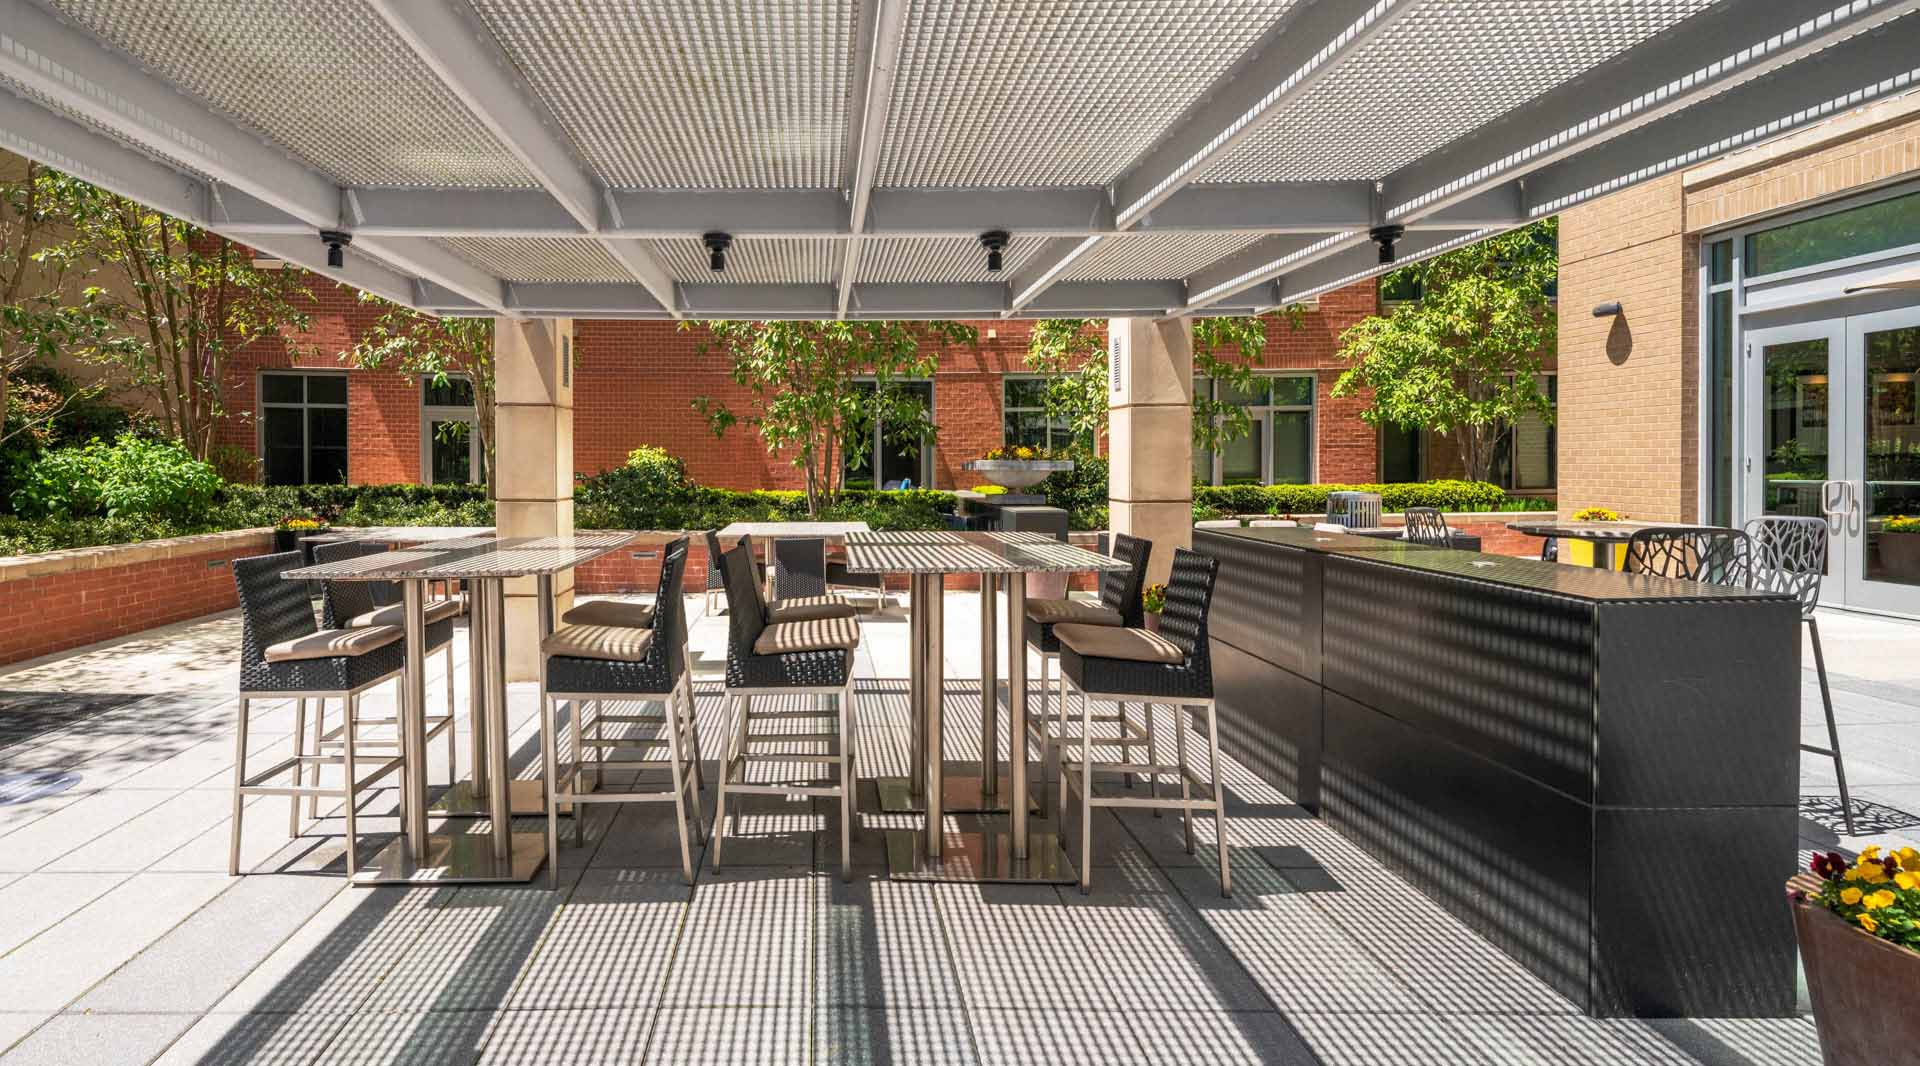 Patio trellis with shaded bar seating